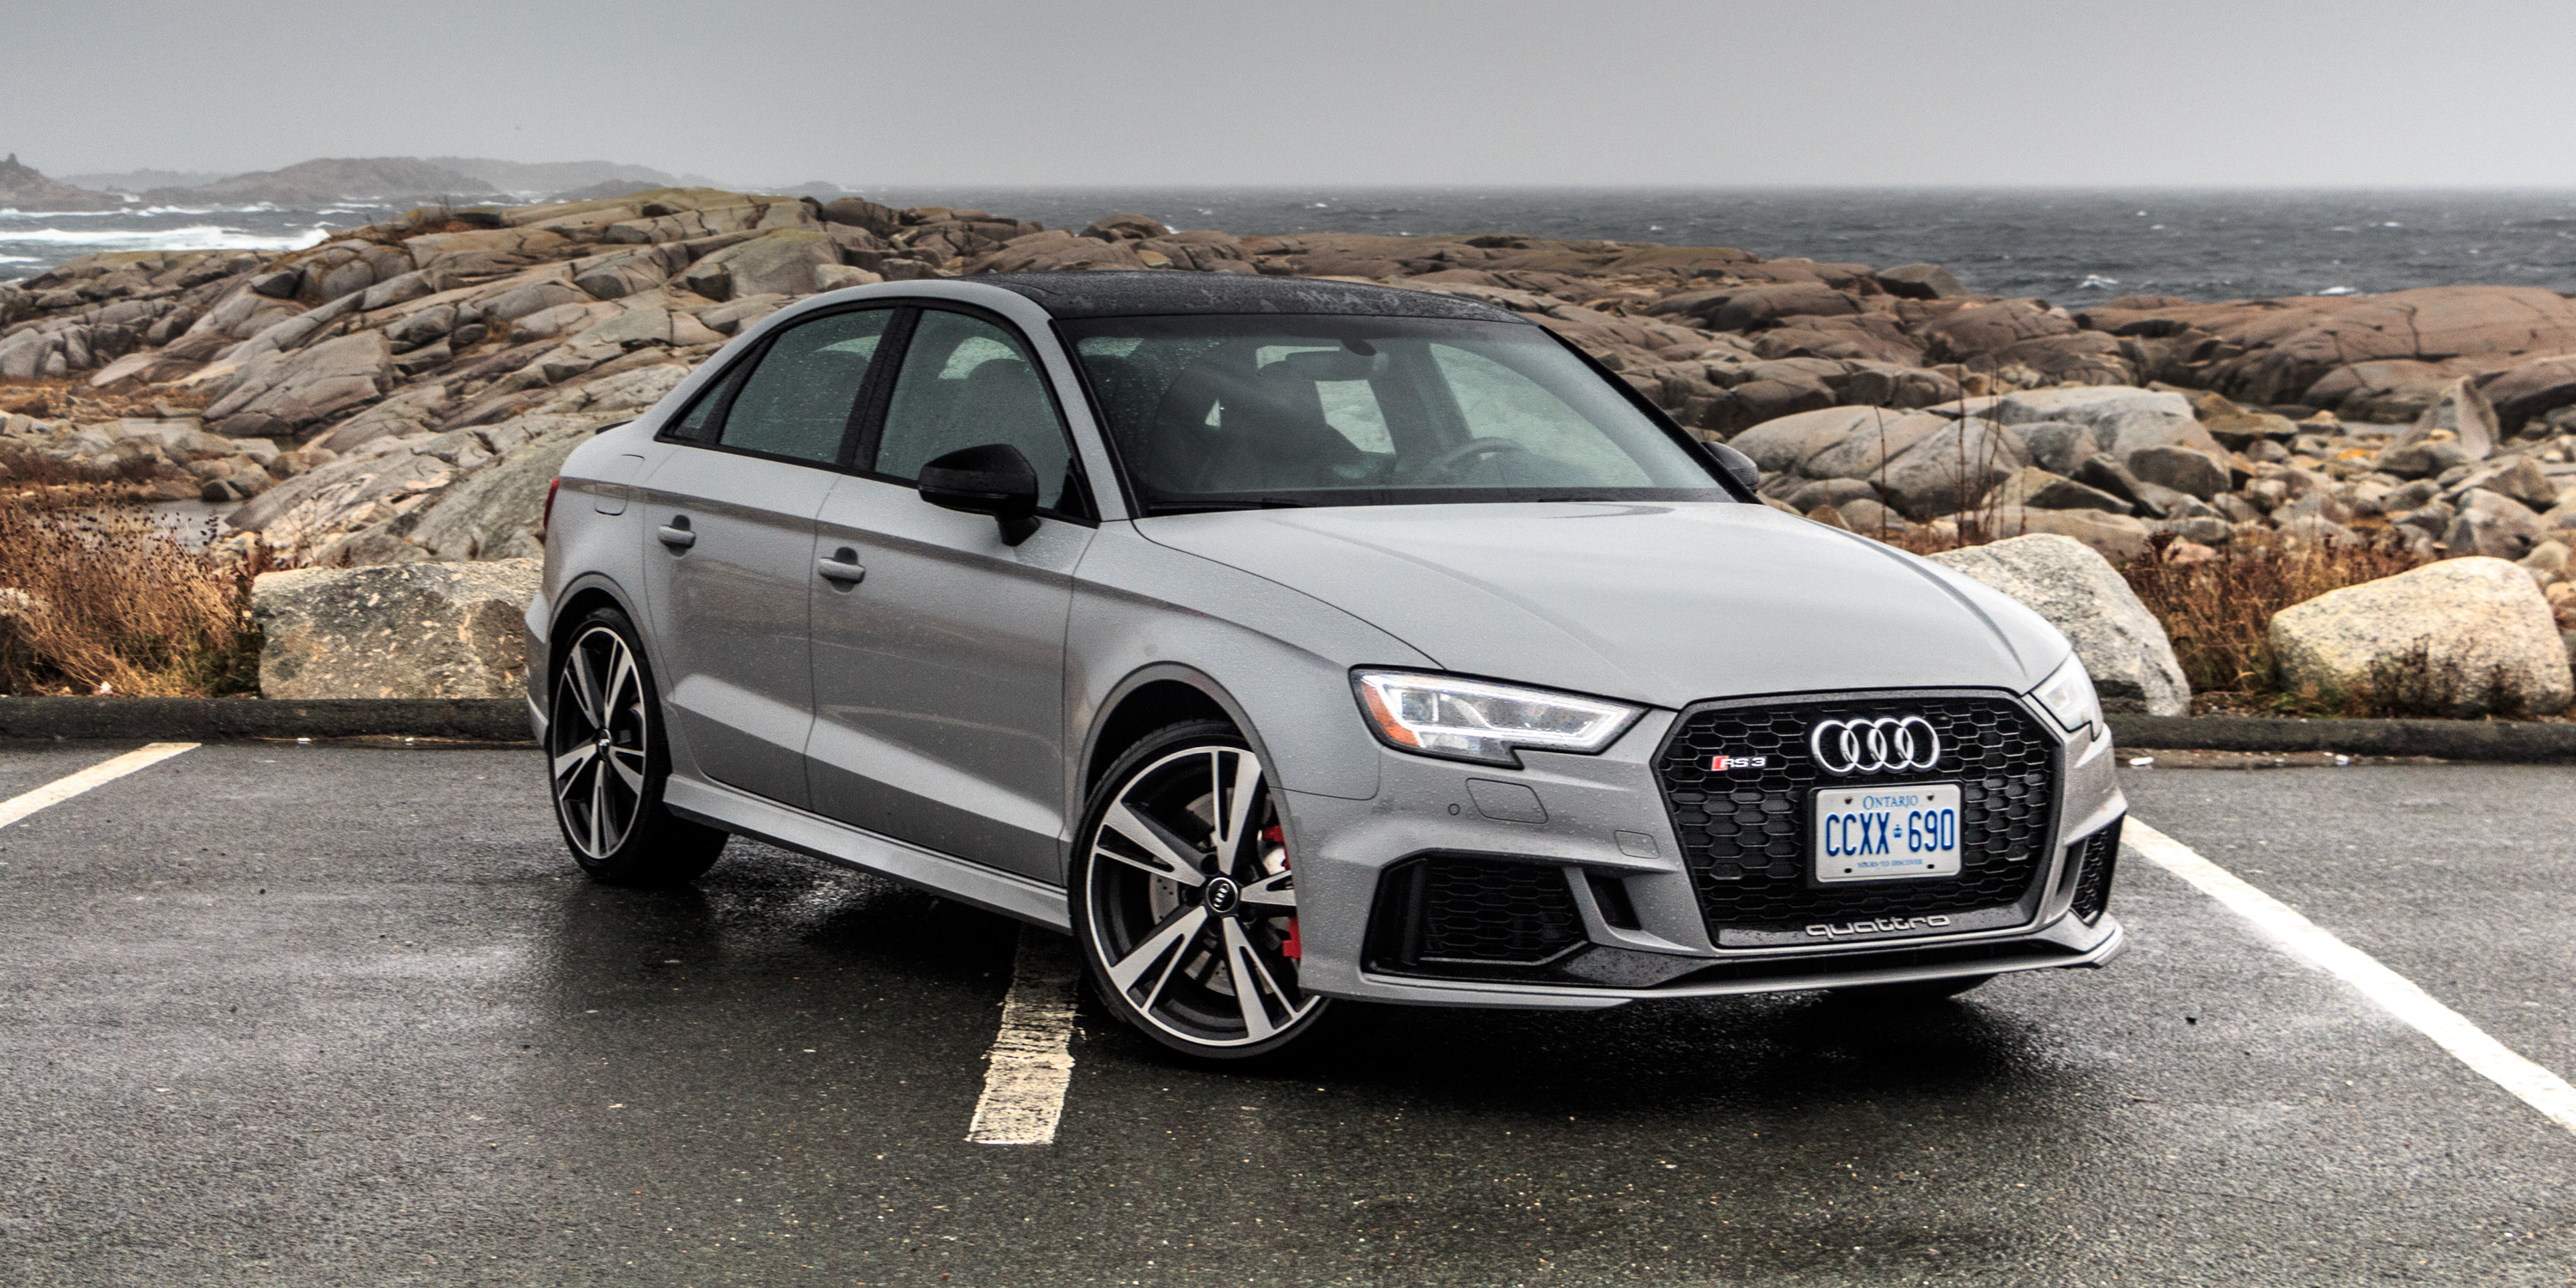 Review The Audi RS Is All About Fun VWVortex - Audi car tires